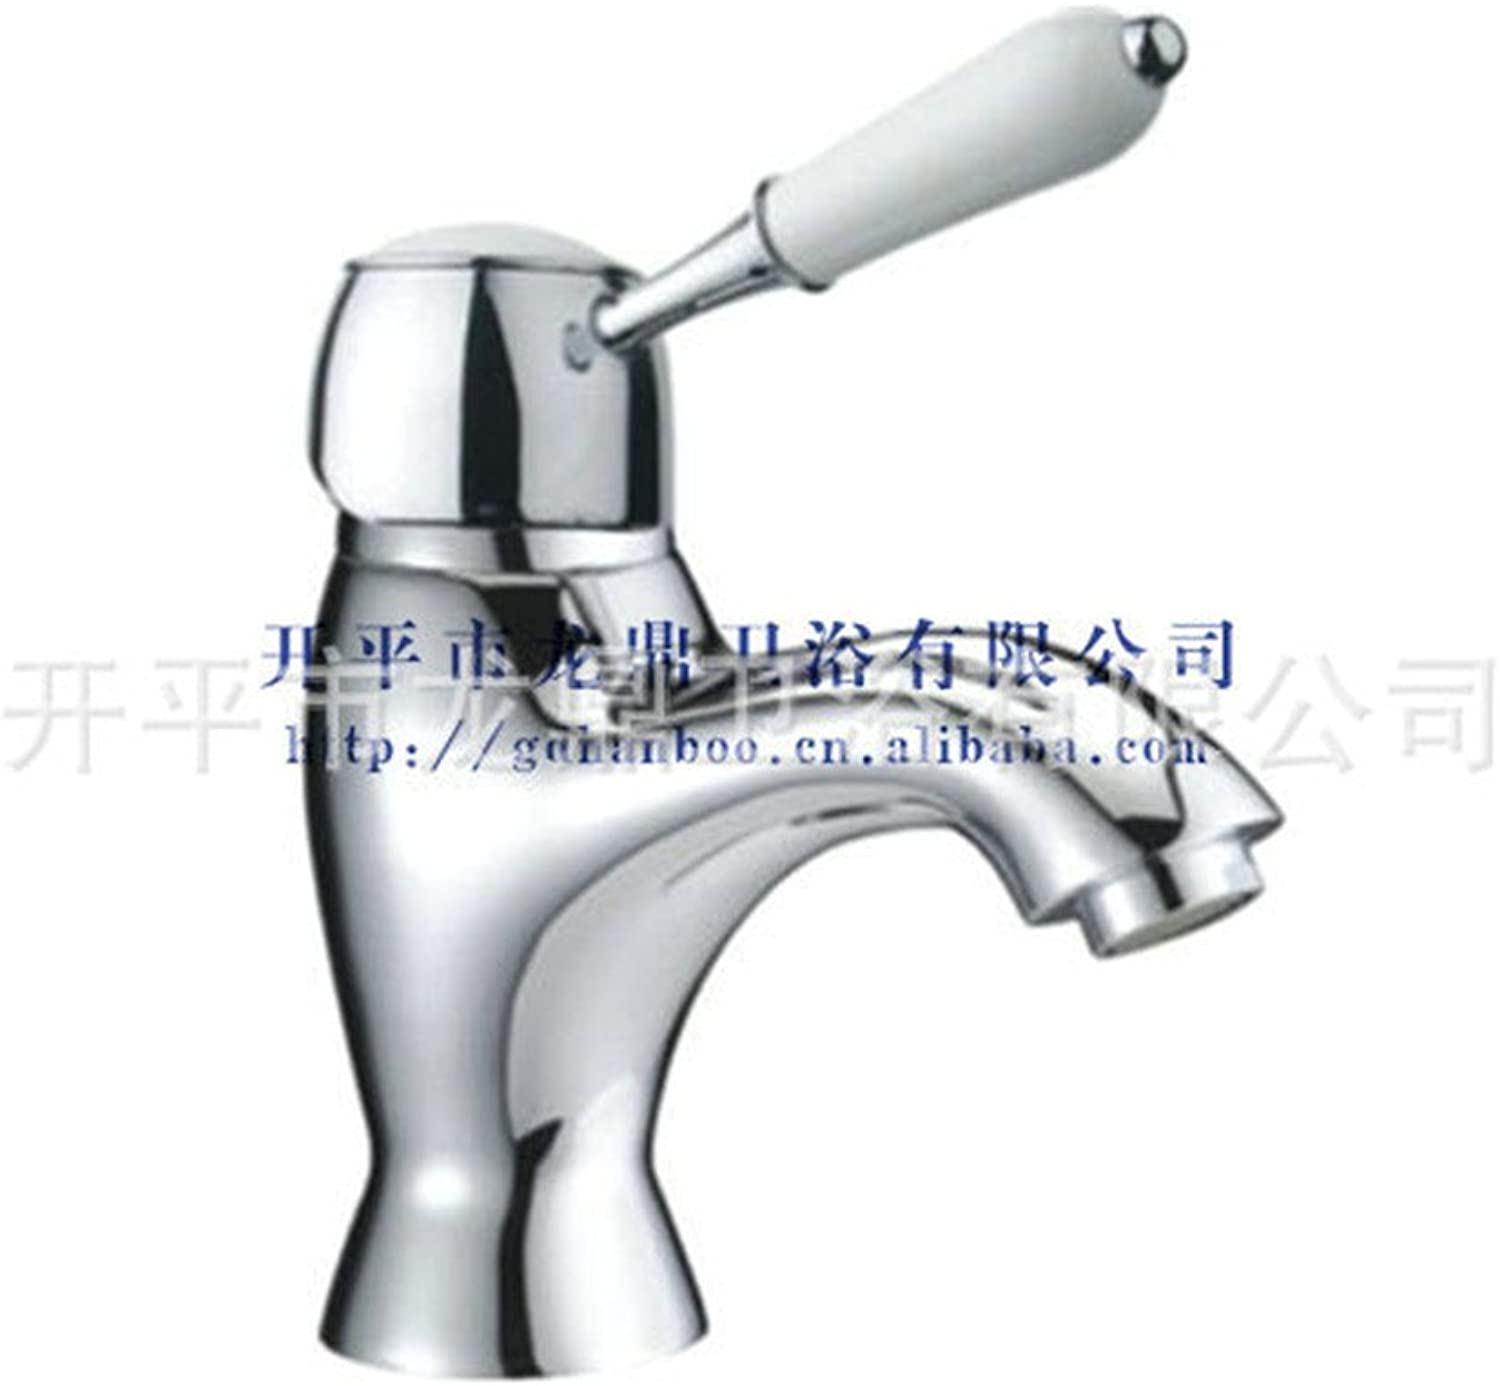 Hlluya Professional Sink Mixer Tap Kitchen Faucet The copper material single handle single hole faucet hot and cold faucets basin mixer full copper fittings